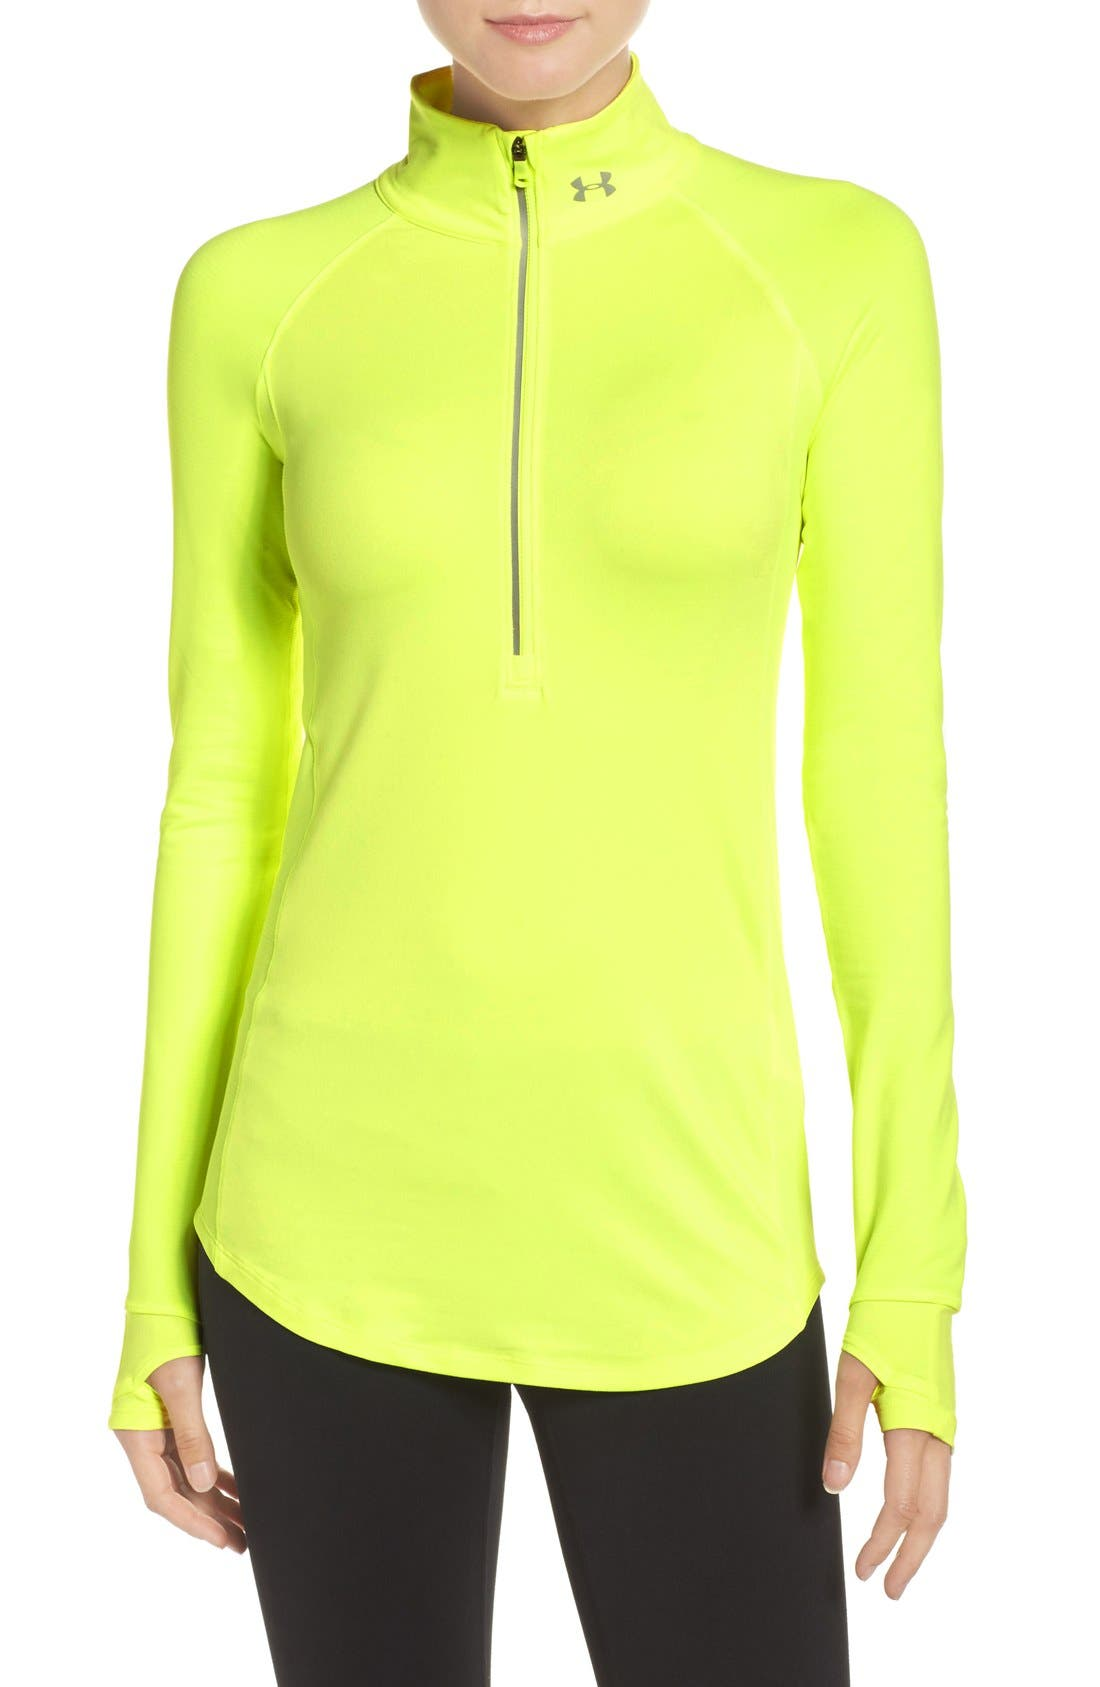 Alternate Image 1 Selected - Under Armour 'Layered Up' Water Resistant Half-Zip Top